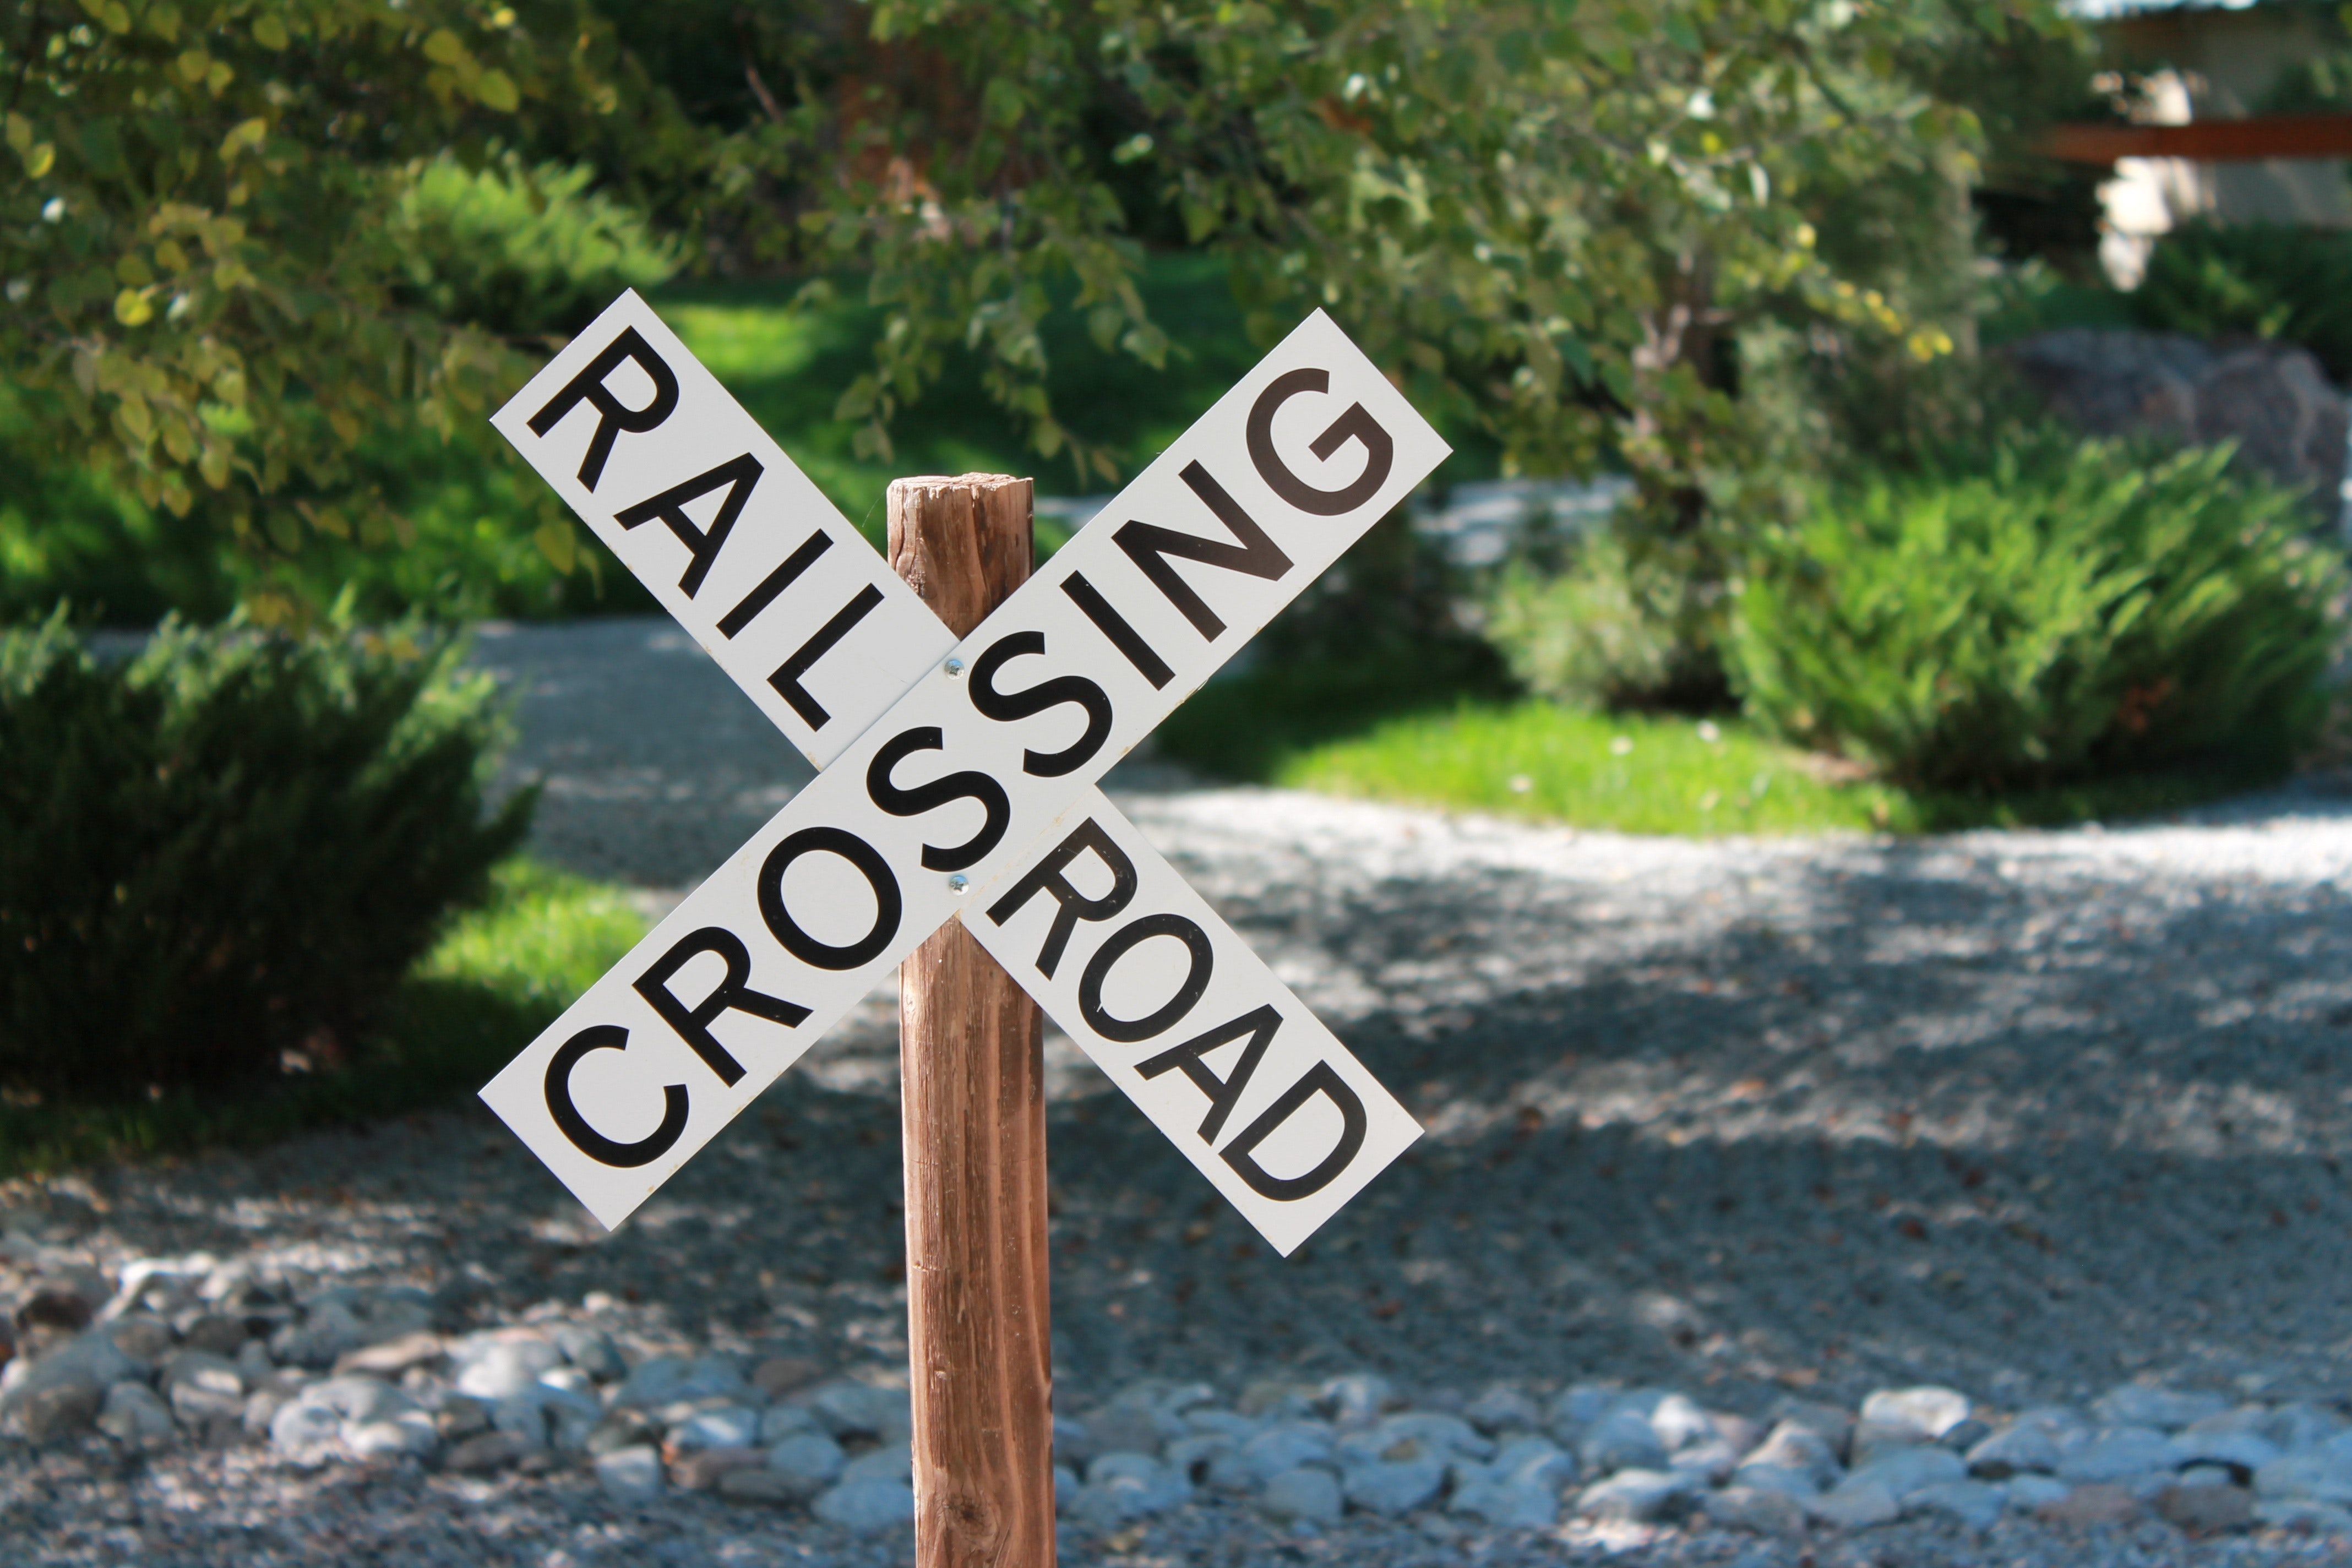 Close-up of Road Sign, Caution, Road, Warning, Trees, HQ Photo